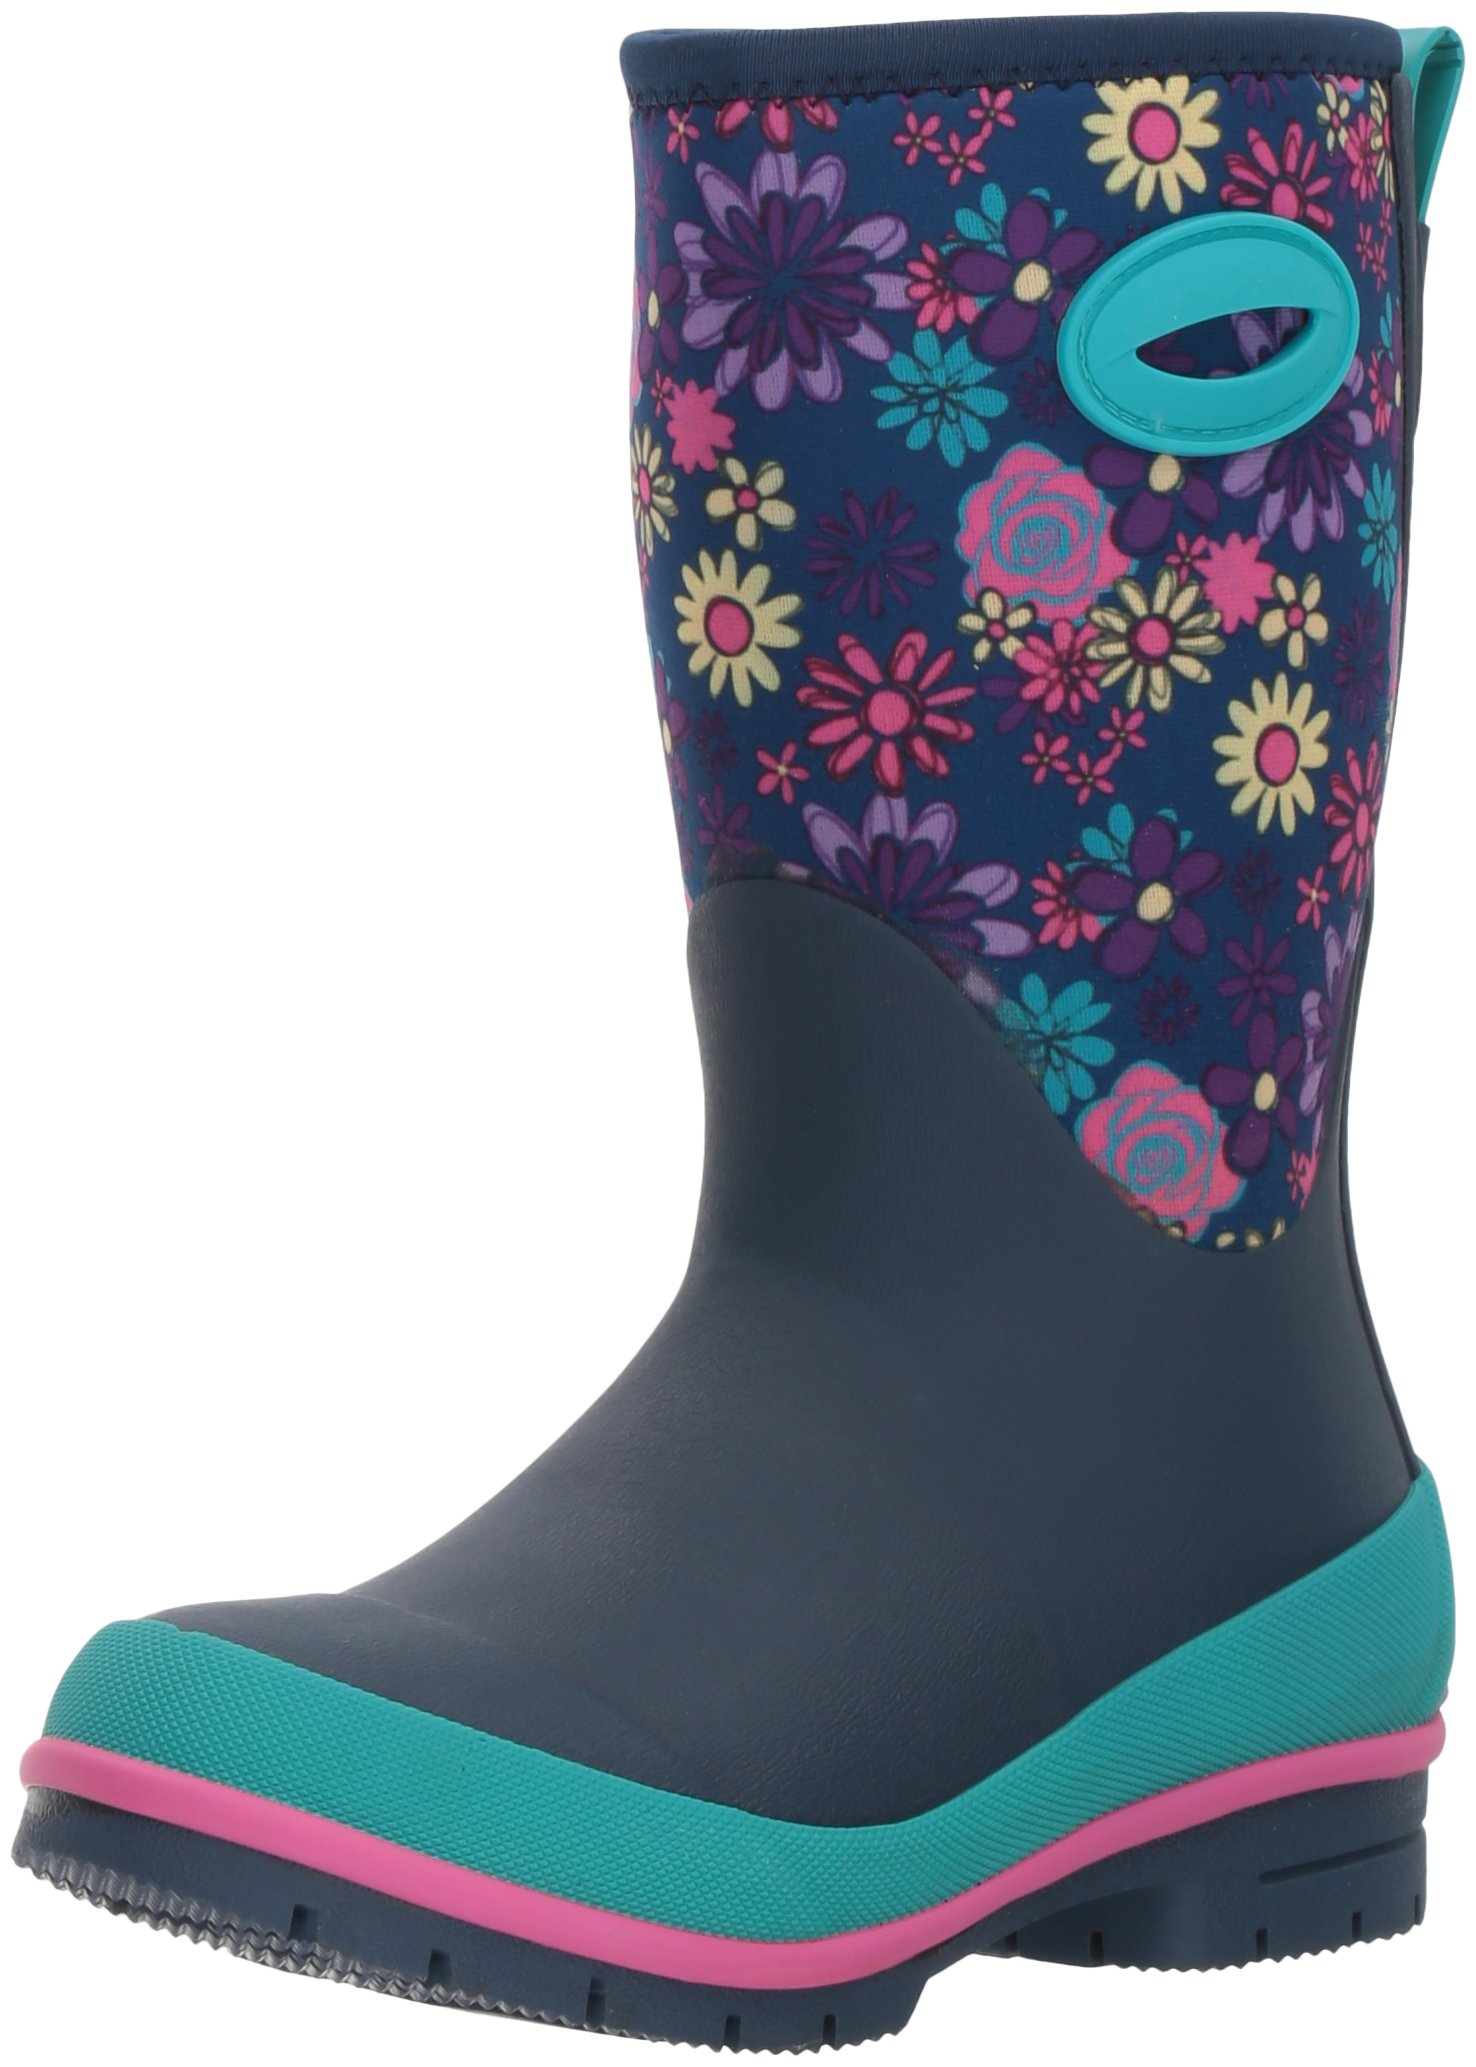 Western Chief Kids Cold Rated Neoprene Memory Foam Snow Boot, Wild Flower, 1 M US Little Kid